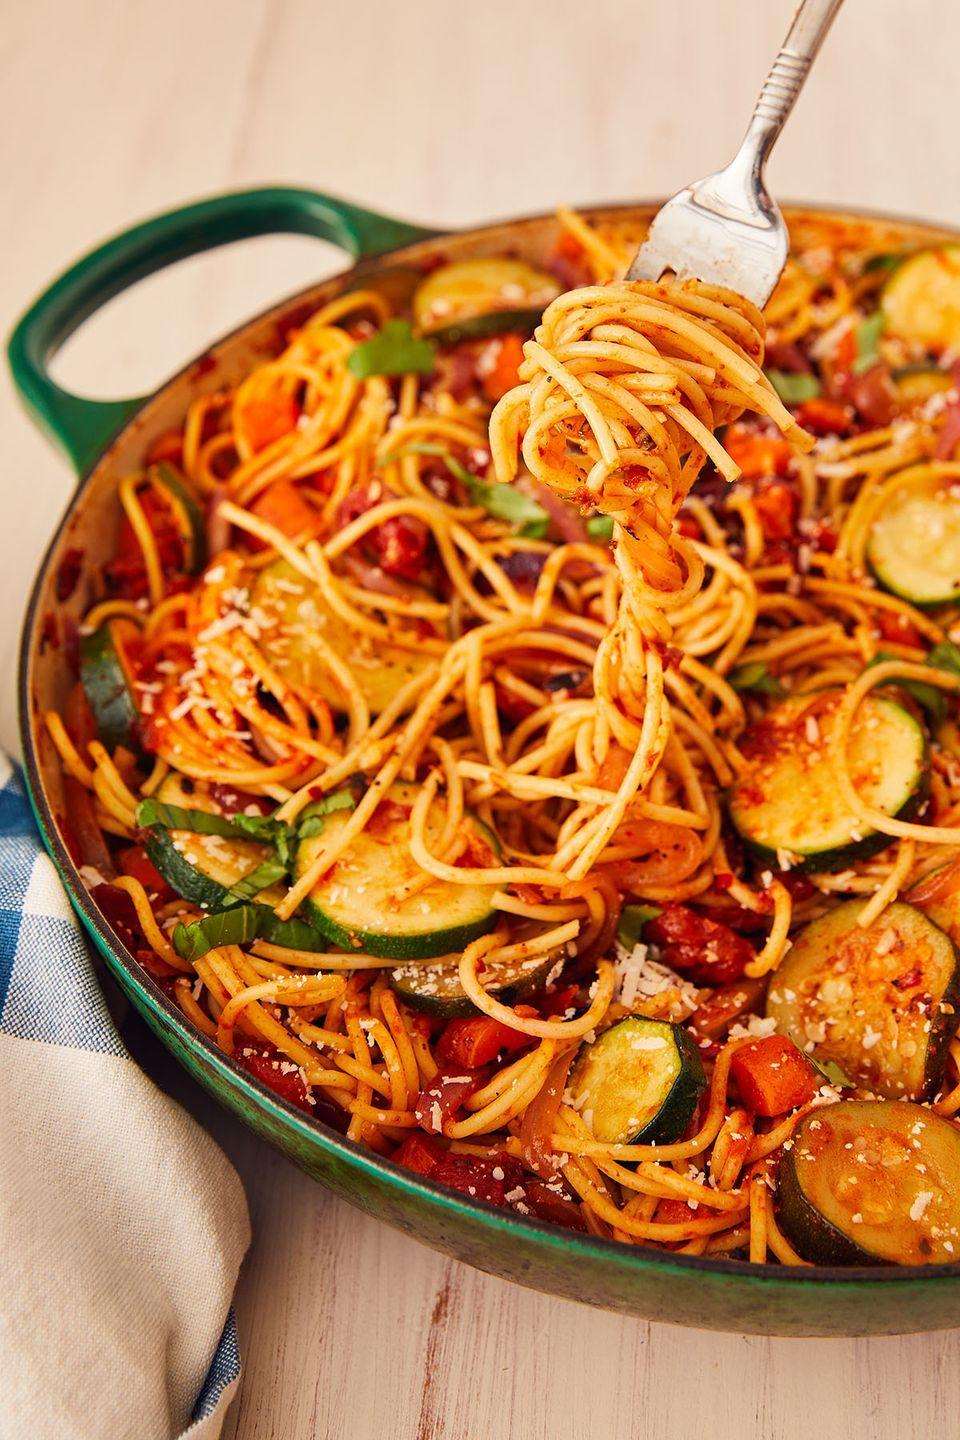 "<p>Leftover veggies have a new home. </p><p>Get the recipe from <a href=""https://www.delish.com/cooking/recipe-ideas/a22363721/vegetable-spaghetti-pasta-recipe/"" rel=""nofollow noopener"" target=""_blank"" data-ylk=""slk:Delish."" class=""link rapid-noclick-resp"">Delish. </a></p>"